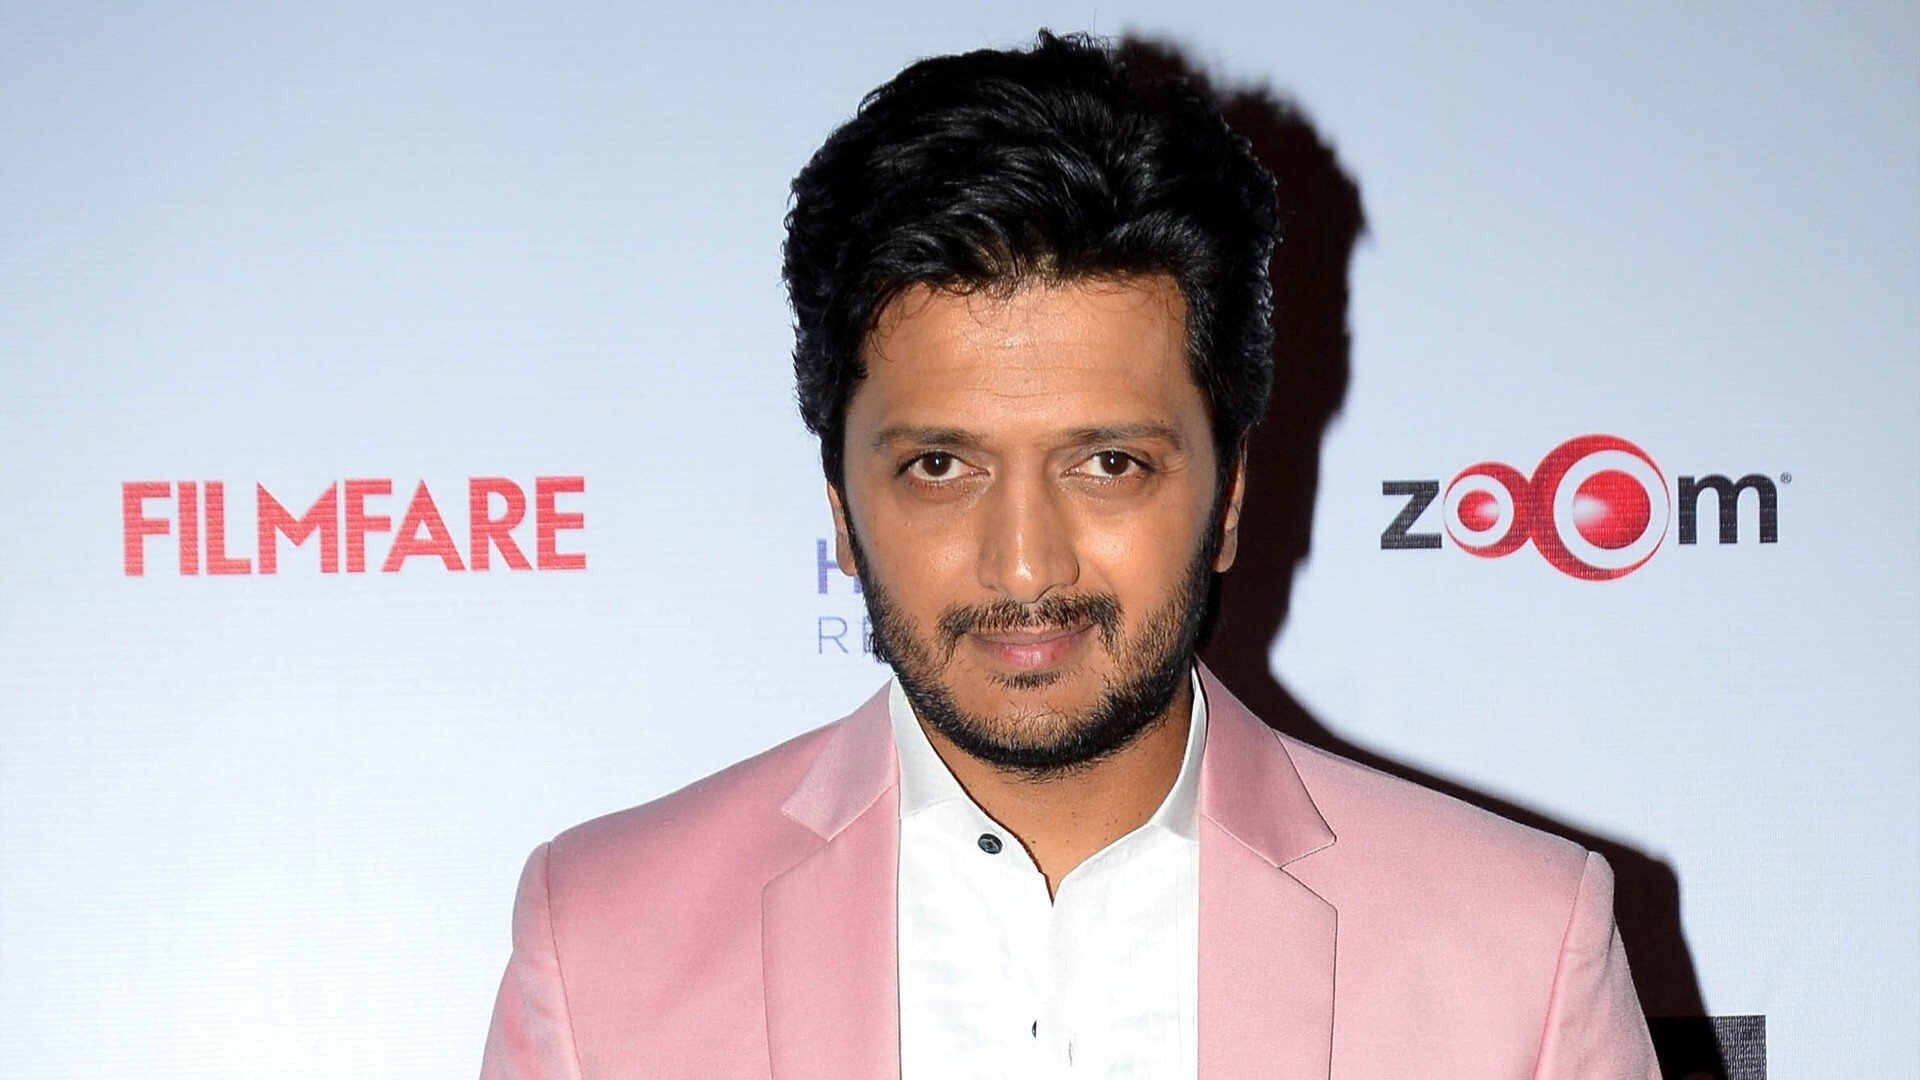 Riteish Deshmukh Bollywood Actor Hd Wallpapers Hd Wallpapers